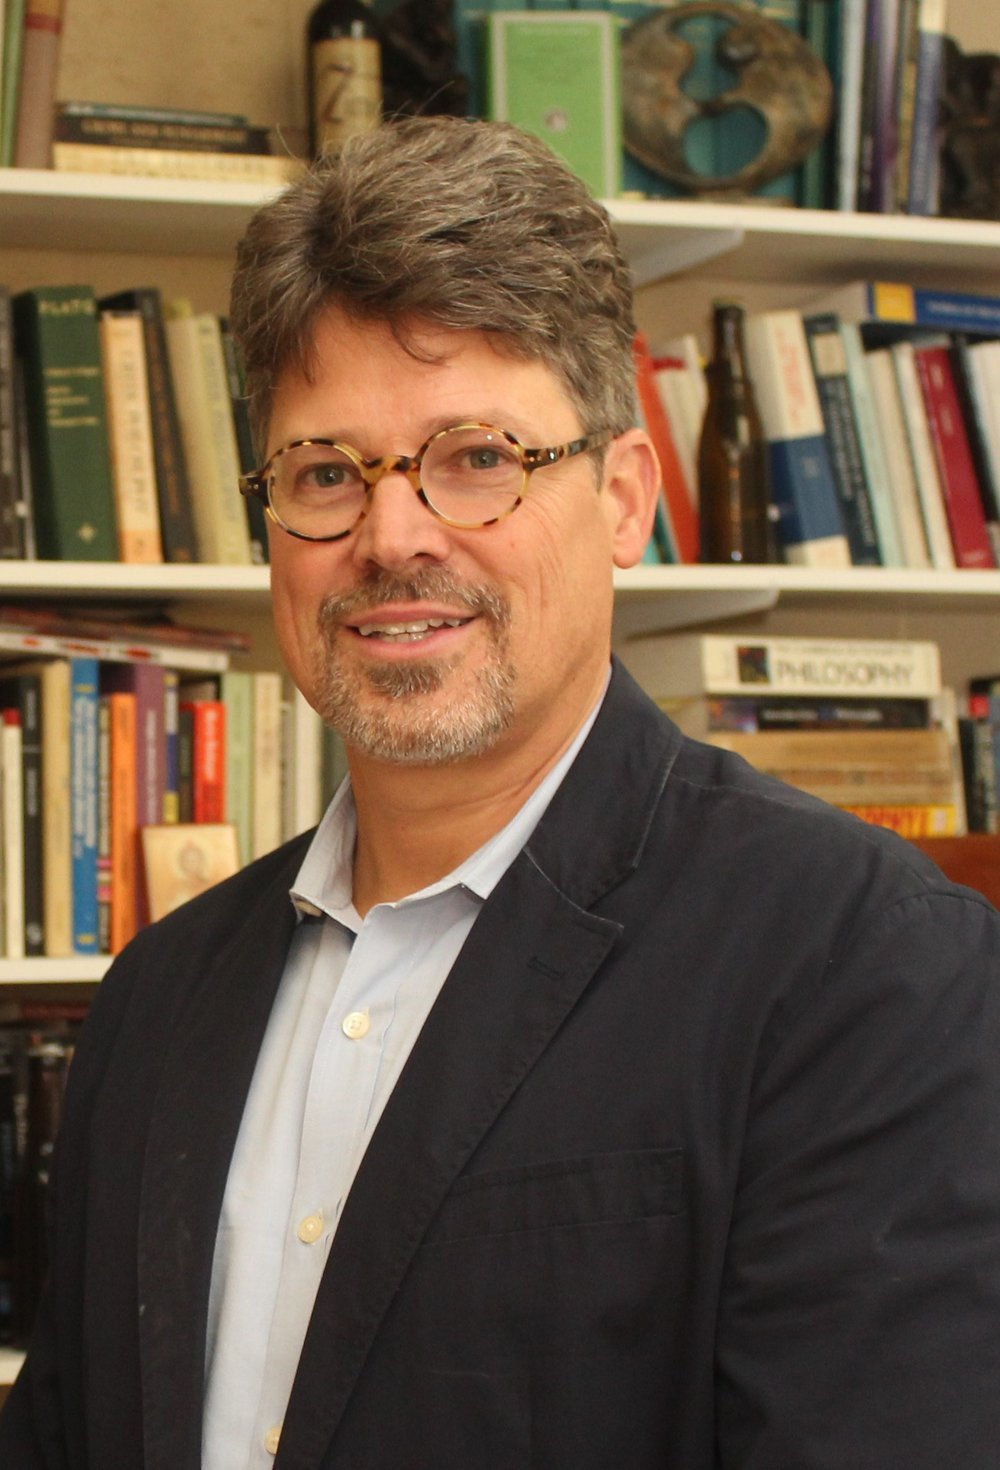 Daniel Haggerty, Ph.D. (Photo by The University of Scranton)